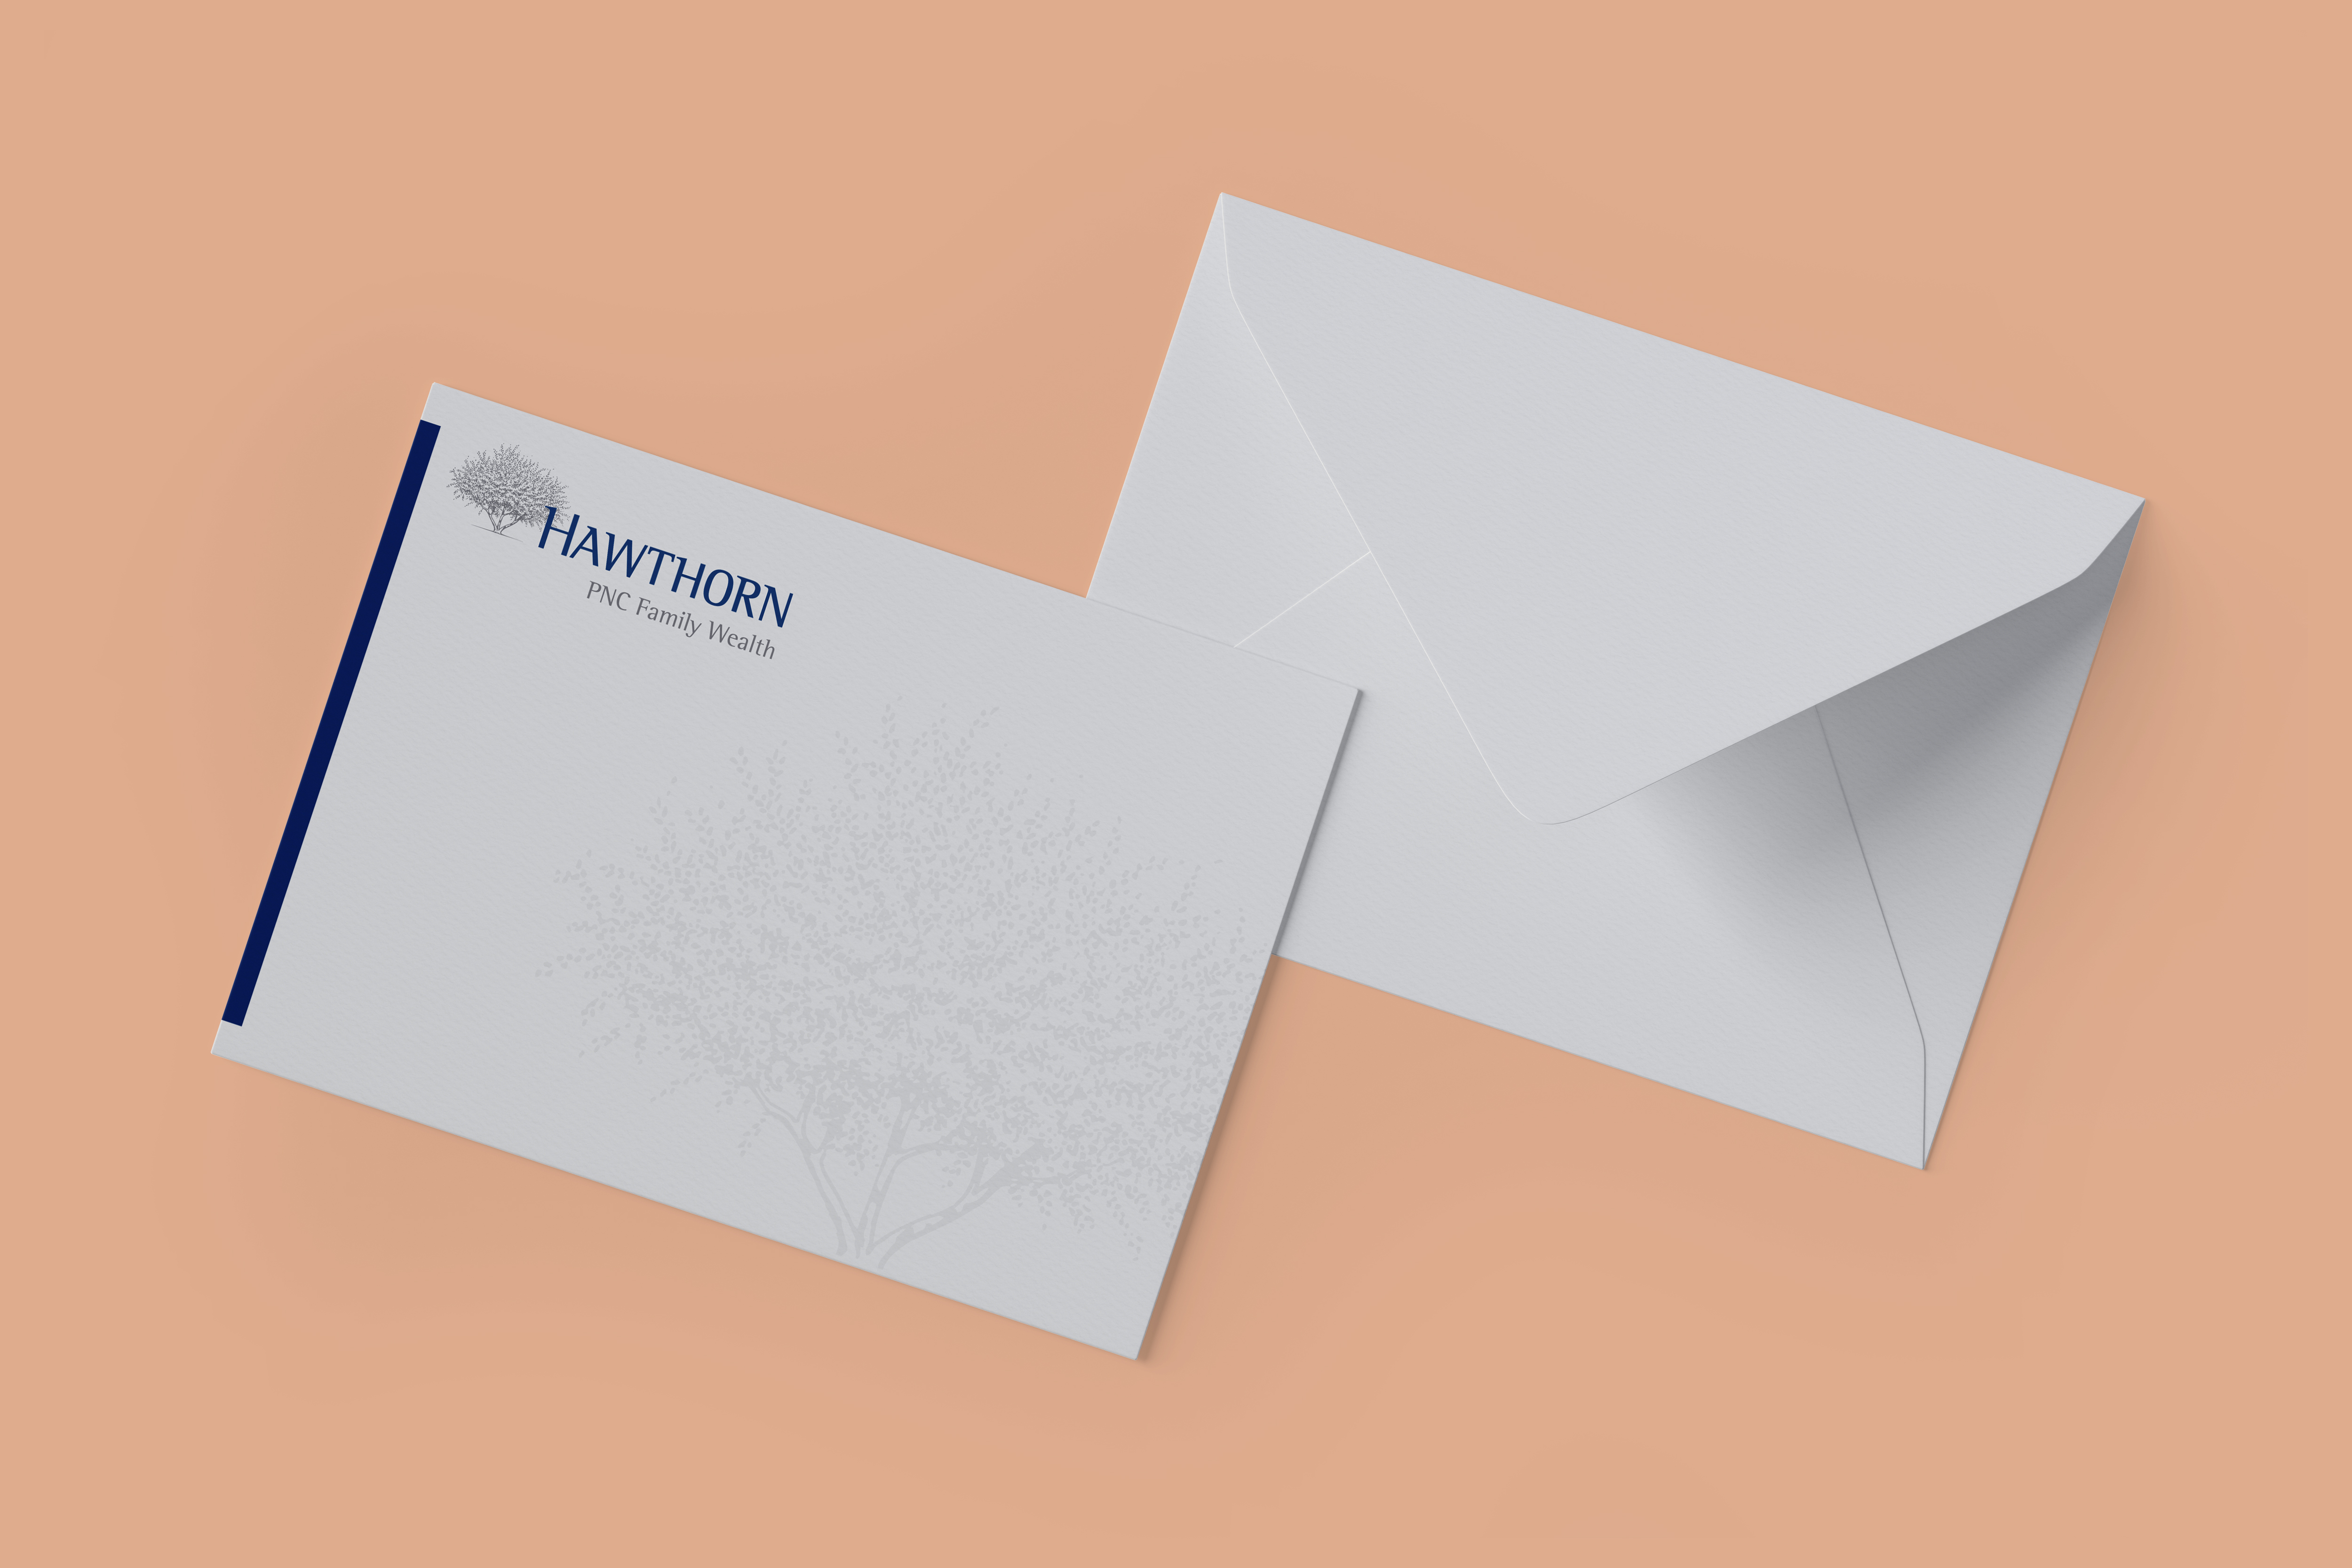 A mockup of the front and back of an envelope over a salmon-colored background. The envelope is light gray and the front features a disconnected, blue bar along the left side and the Hawthorn logo in the top left corner.